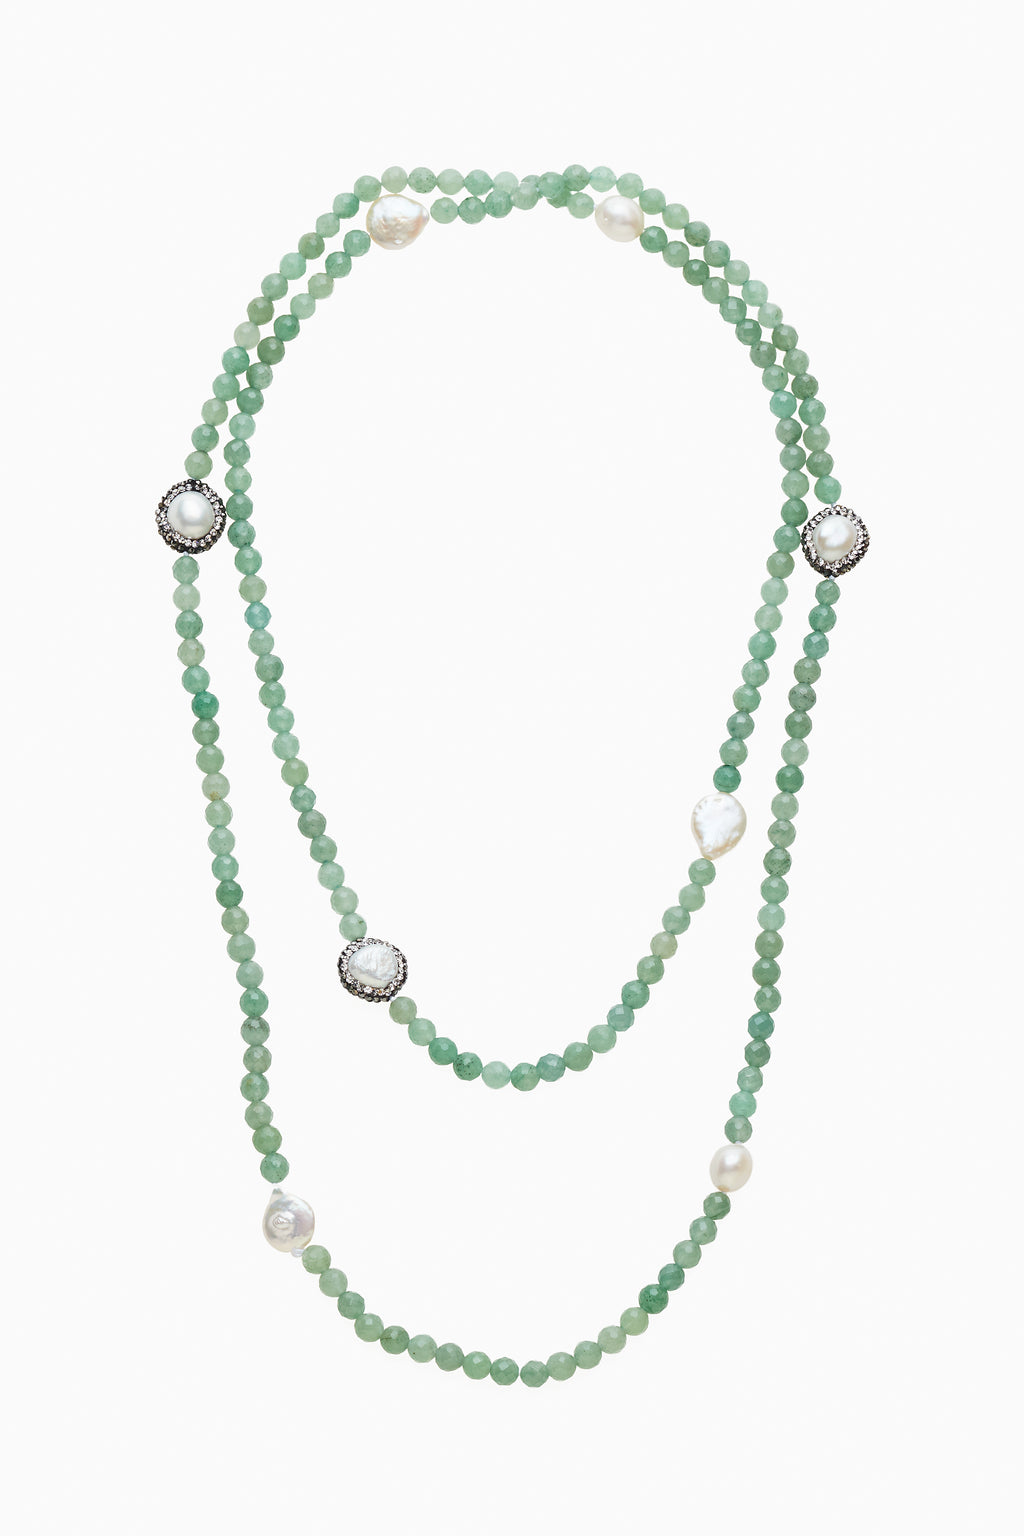 Endless Strand of Jade Beads & Freshwater Pearls